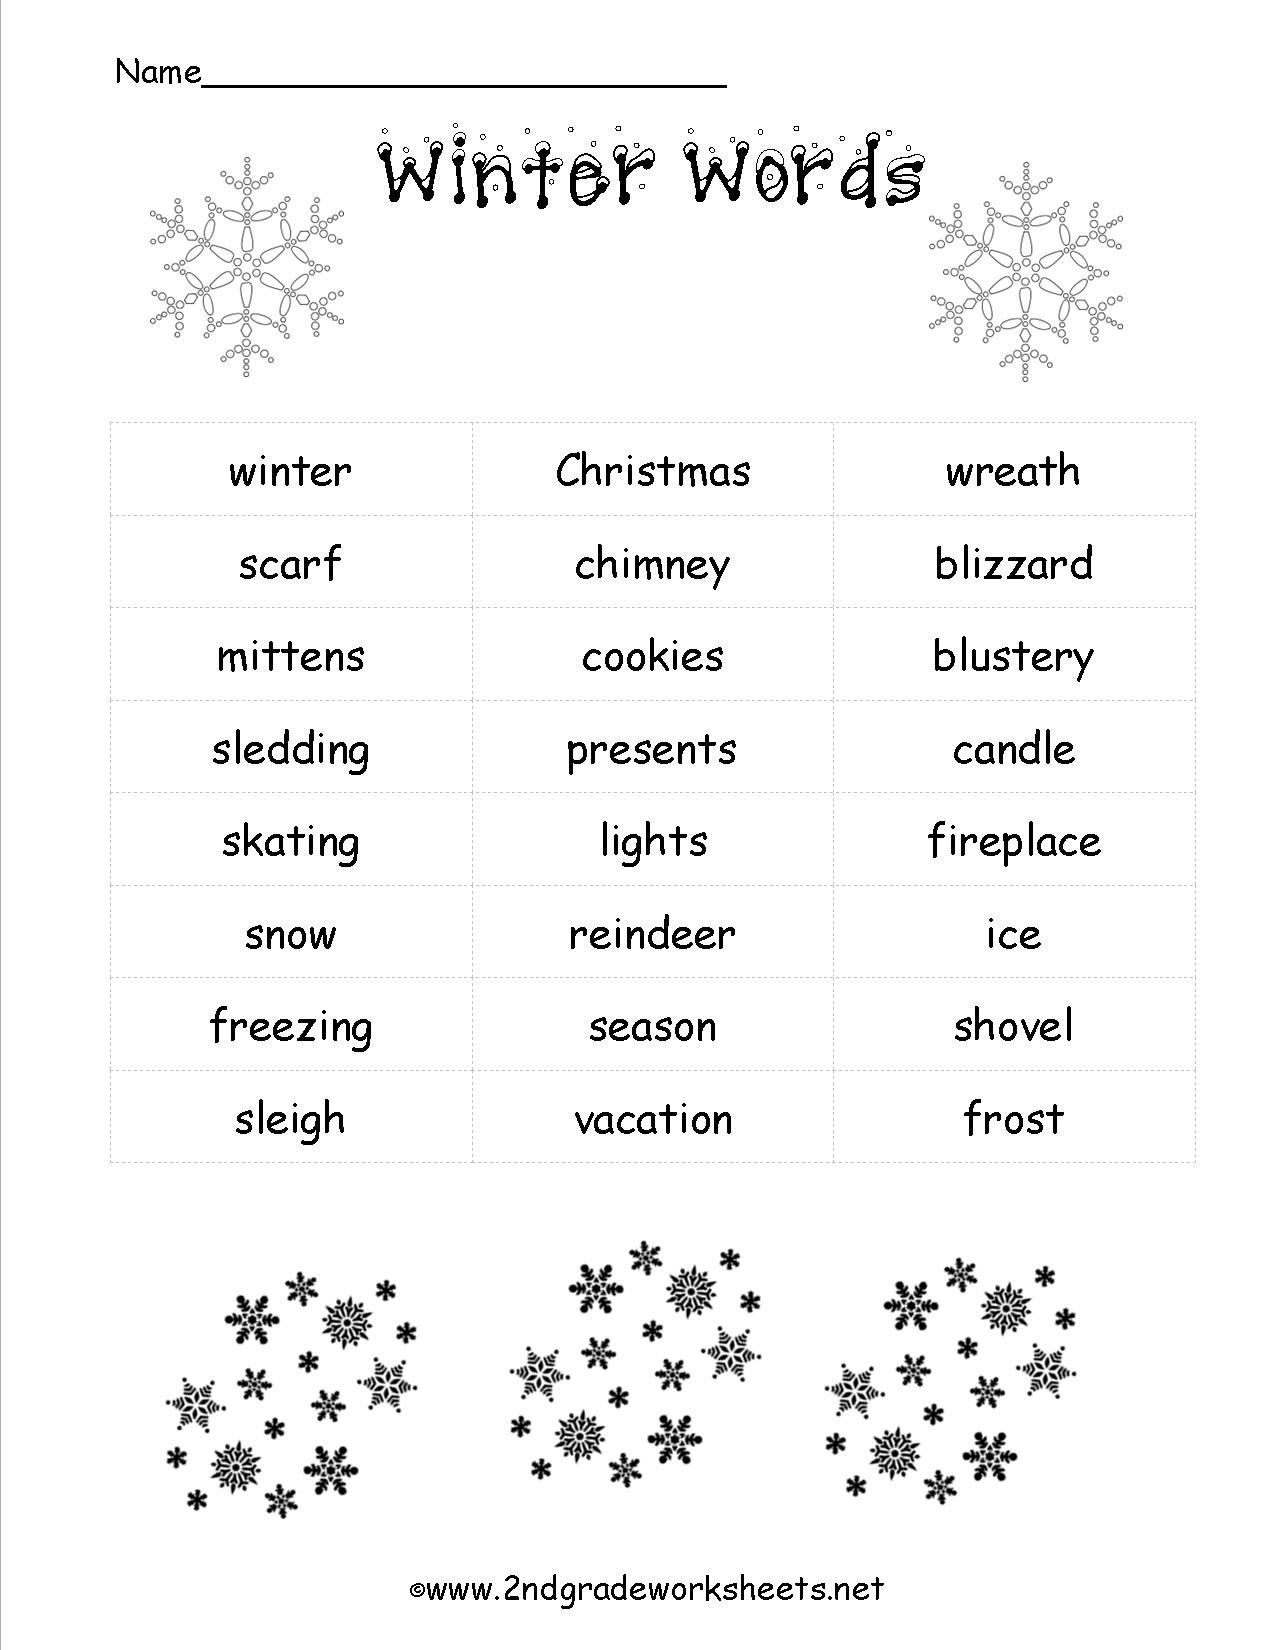 Christmas Worksheets And Printouts - Free Printable Christmas Maths Worksheets Ks1